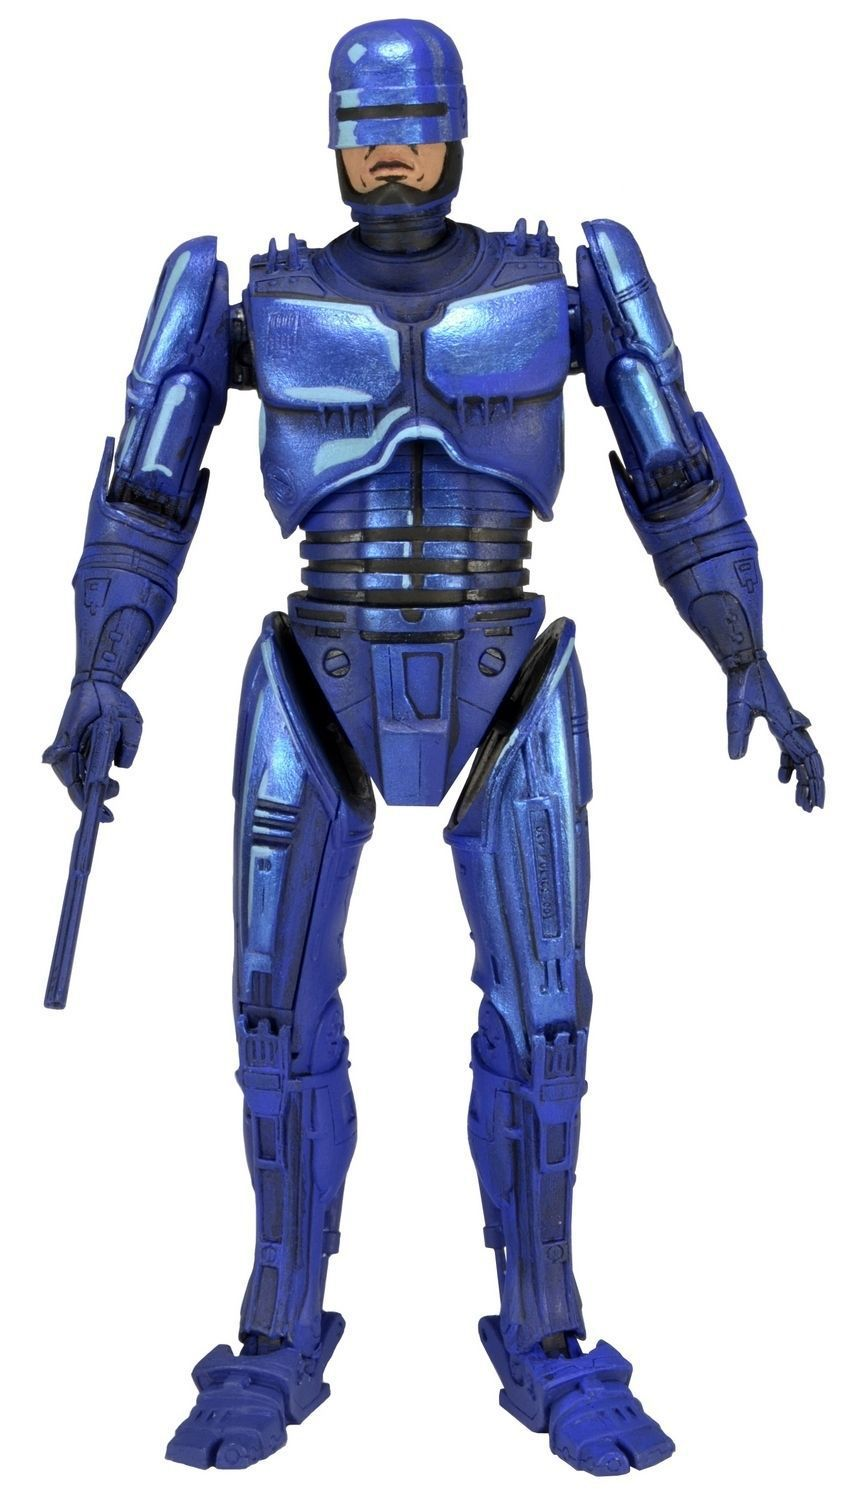 Free Shipping NECA 7 Robocop Classic 1987 Video Game Appearance Action Figure Collectible Model Toy MVFG144 neca planet of the apes gorilla soldier pvc action figure collectible toy 8 20cm